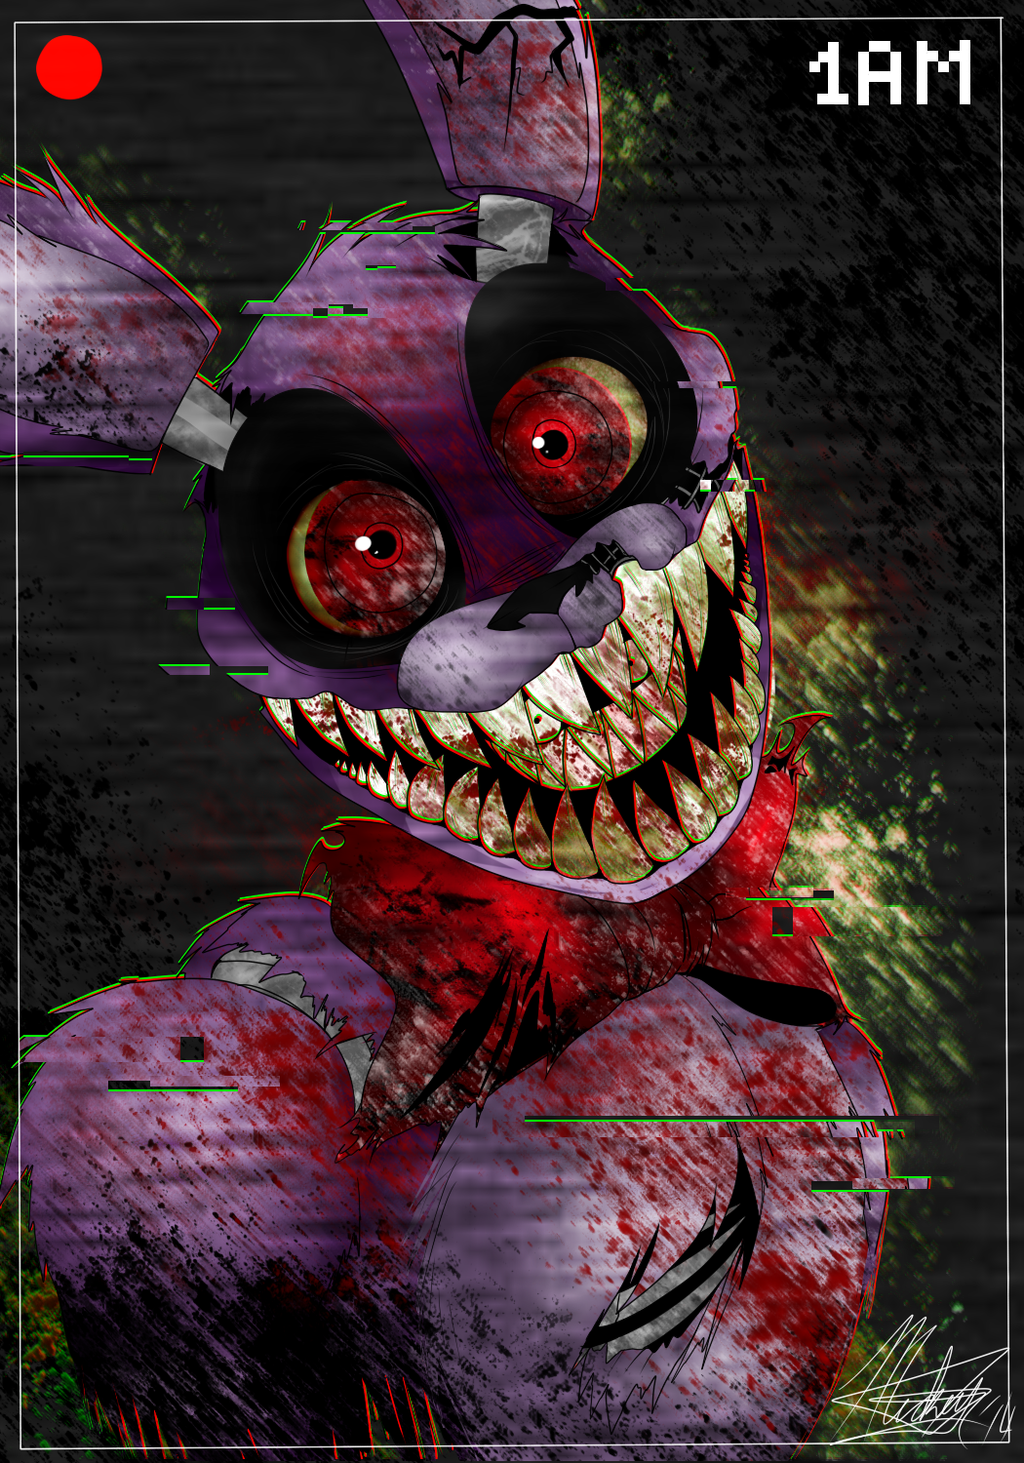 Scary fnaf wallpaper wallpapersafari for Deviantart wallpaper